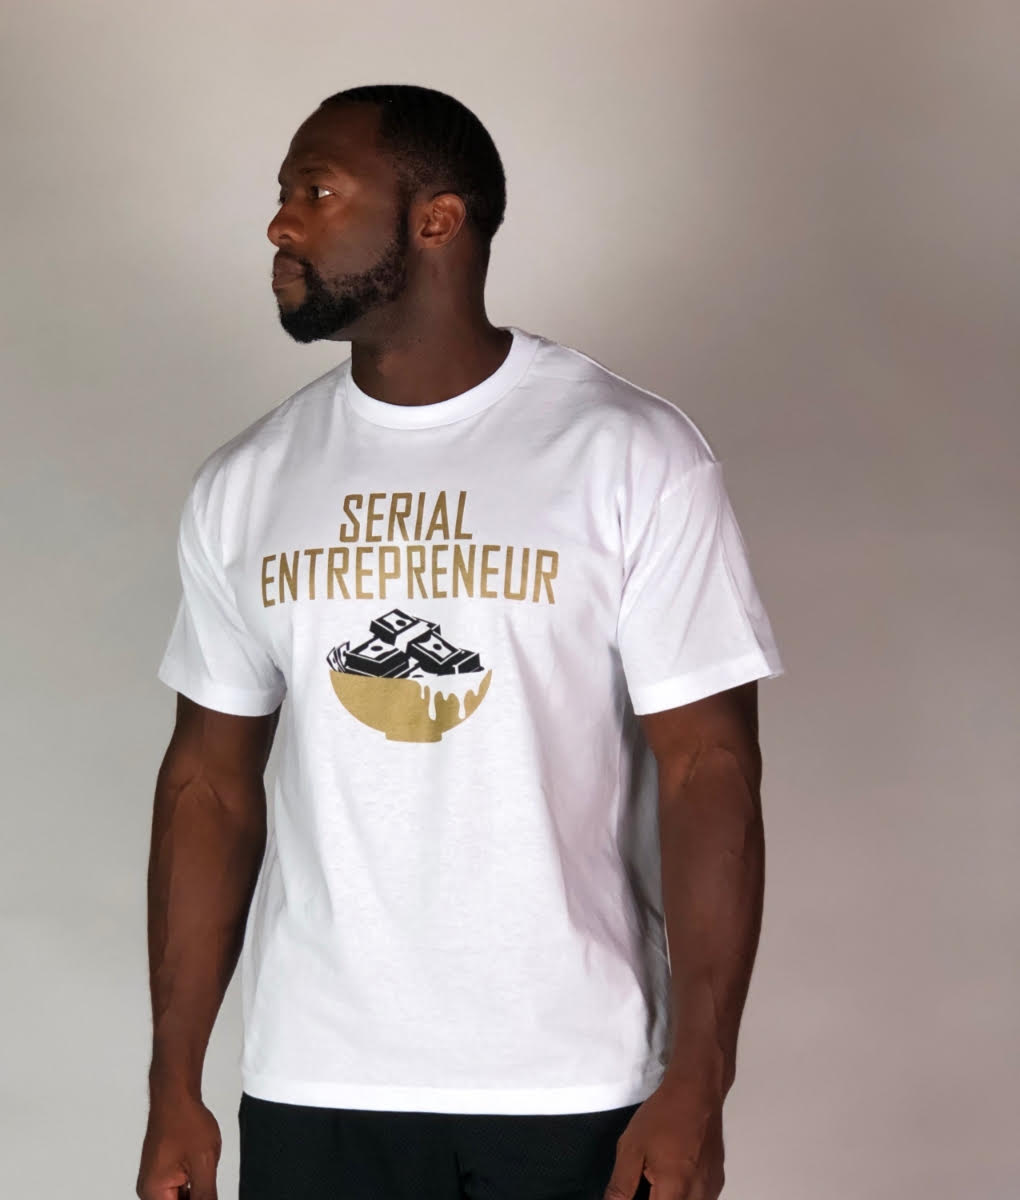 SERIAL ENTREPRENEUR (GOLD STANDARD EDTION) WHITE